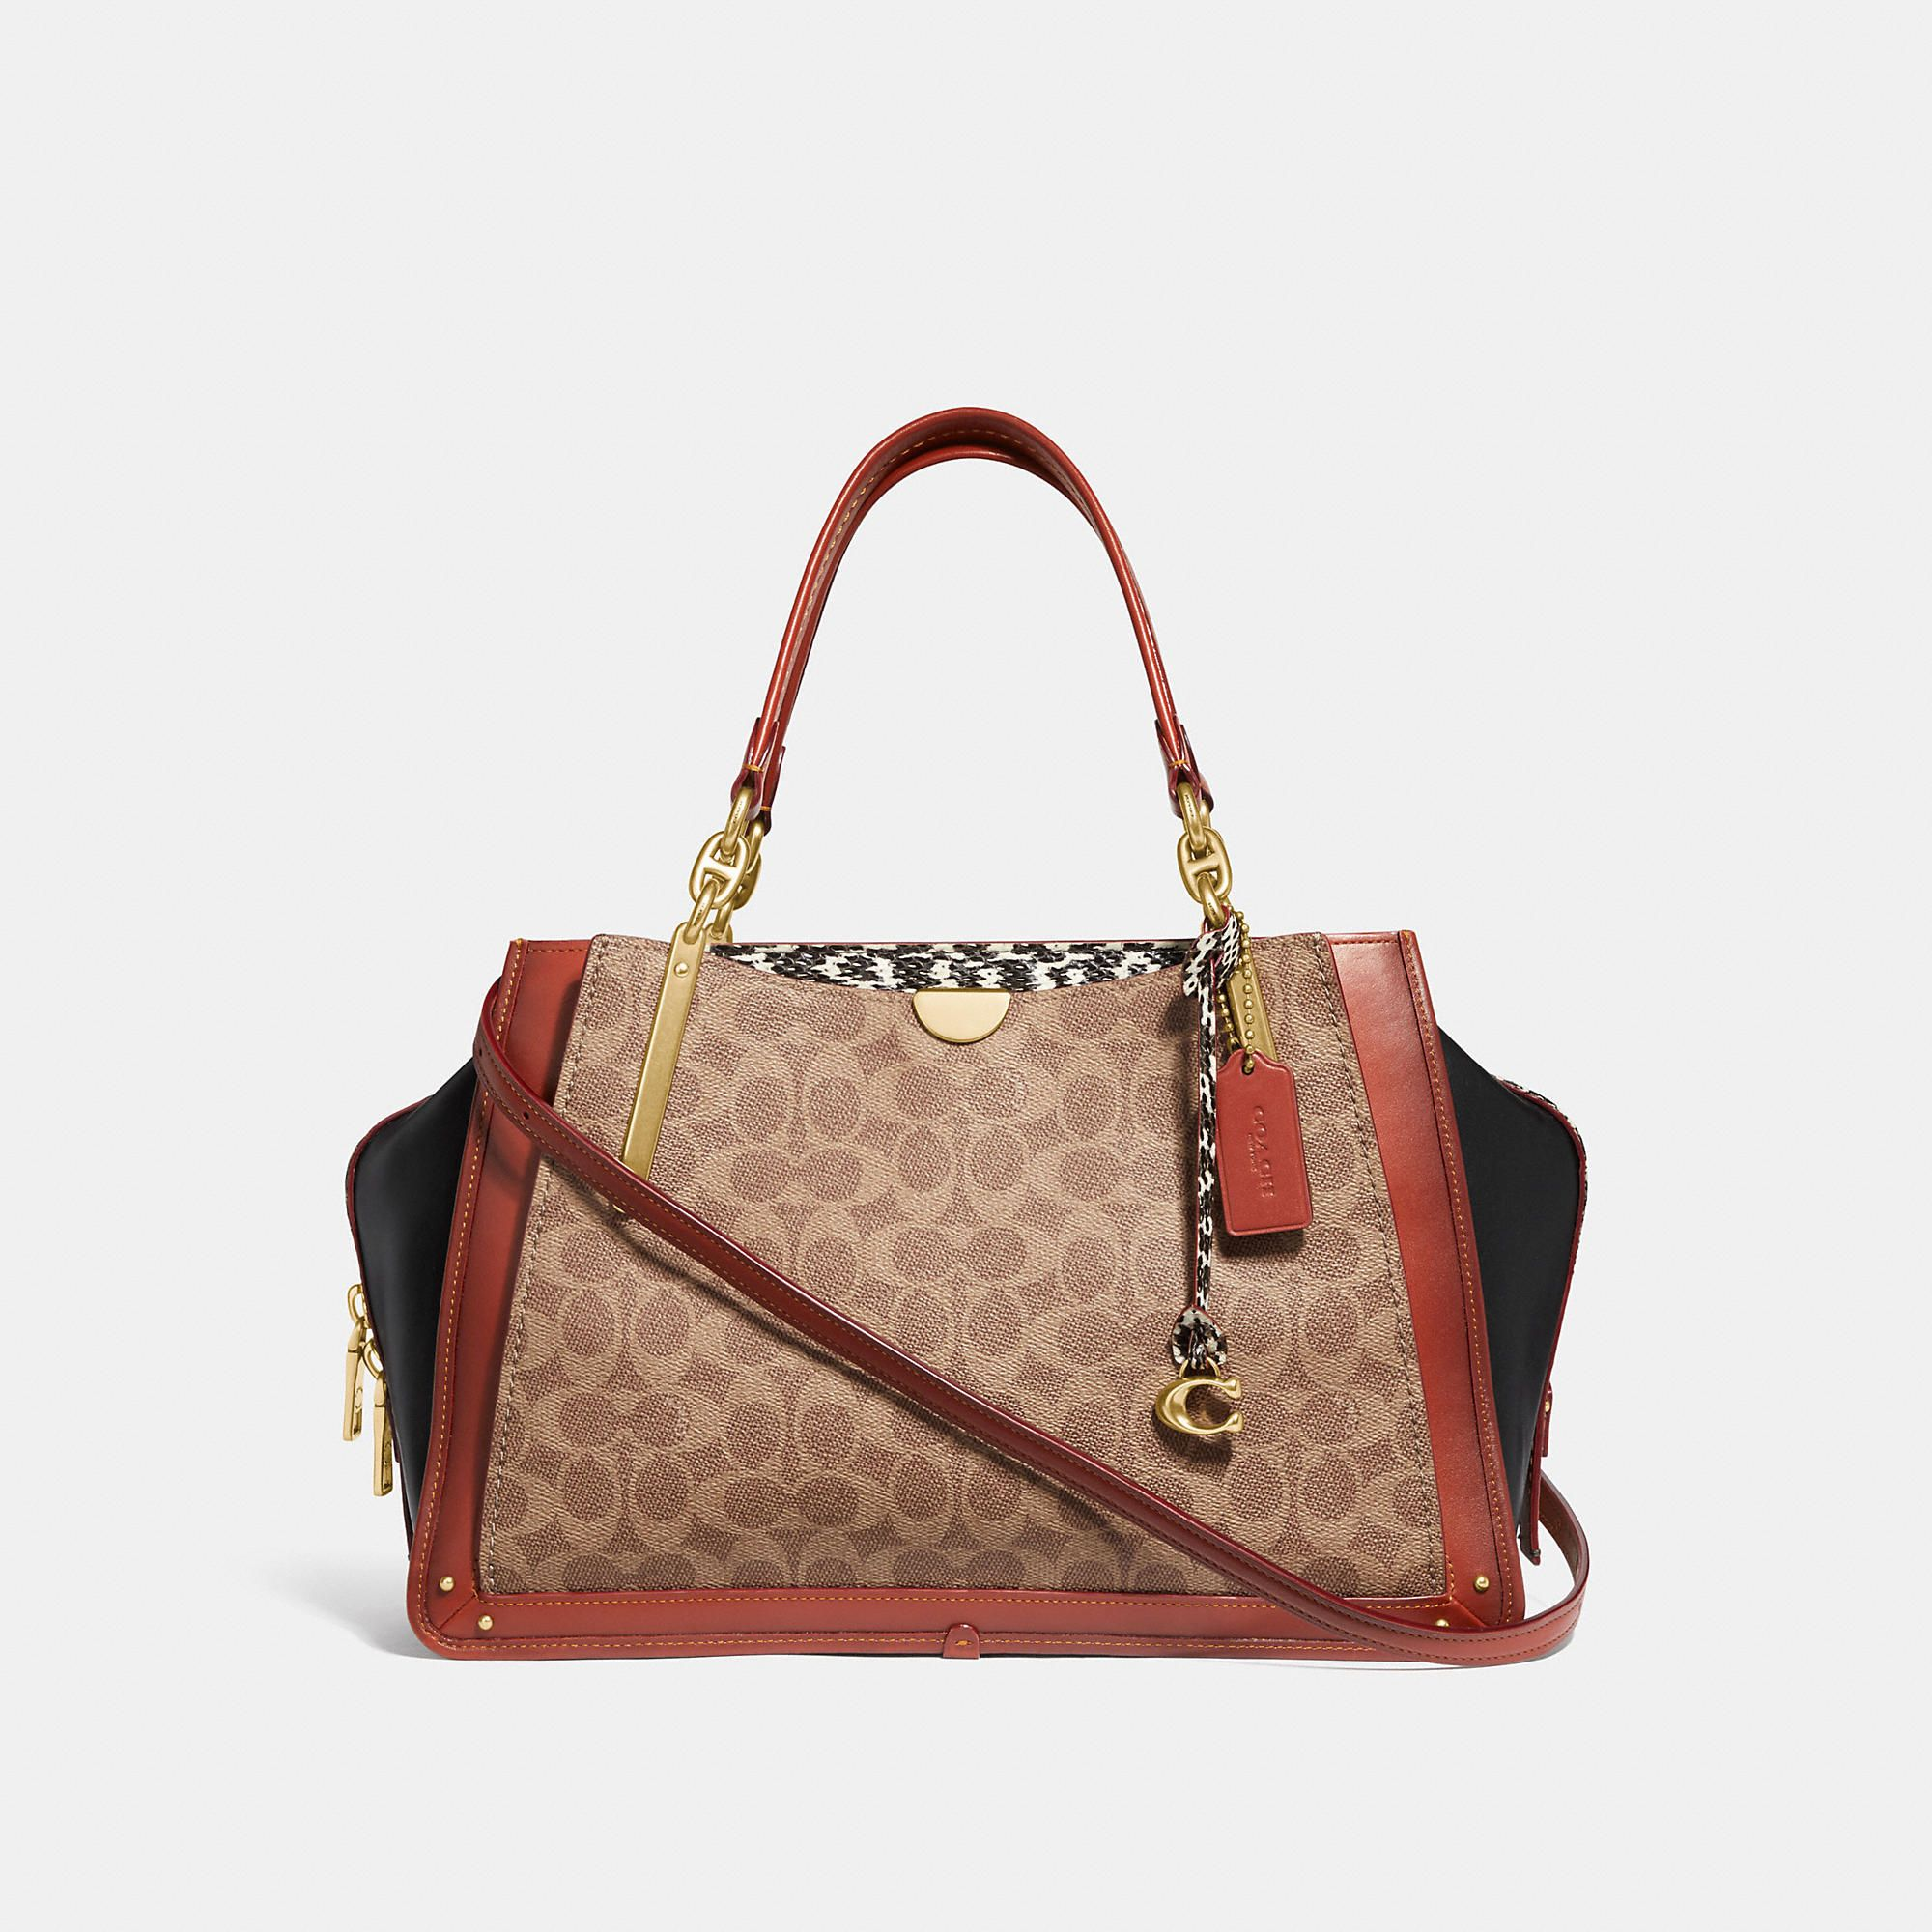 7506d403 COACH Dreamer 36 In Signature Canvas With Snakeskin Detail - Women's ...